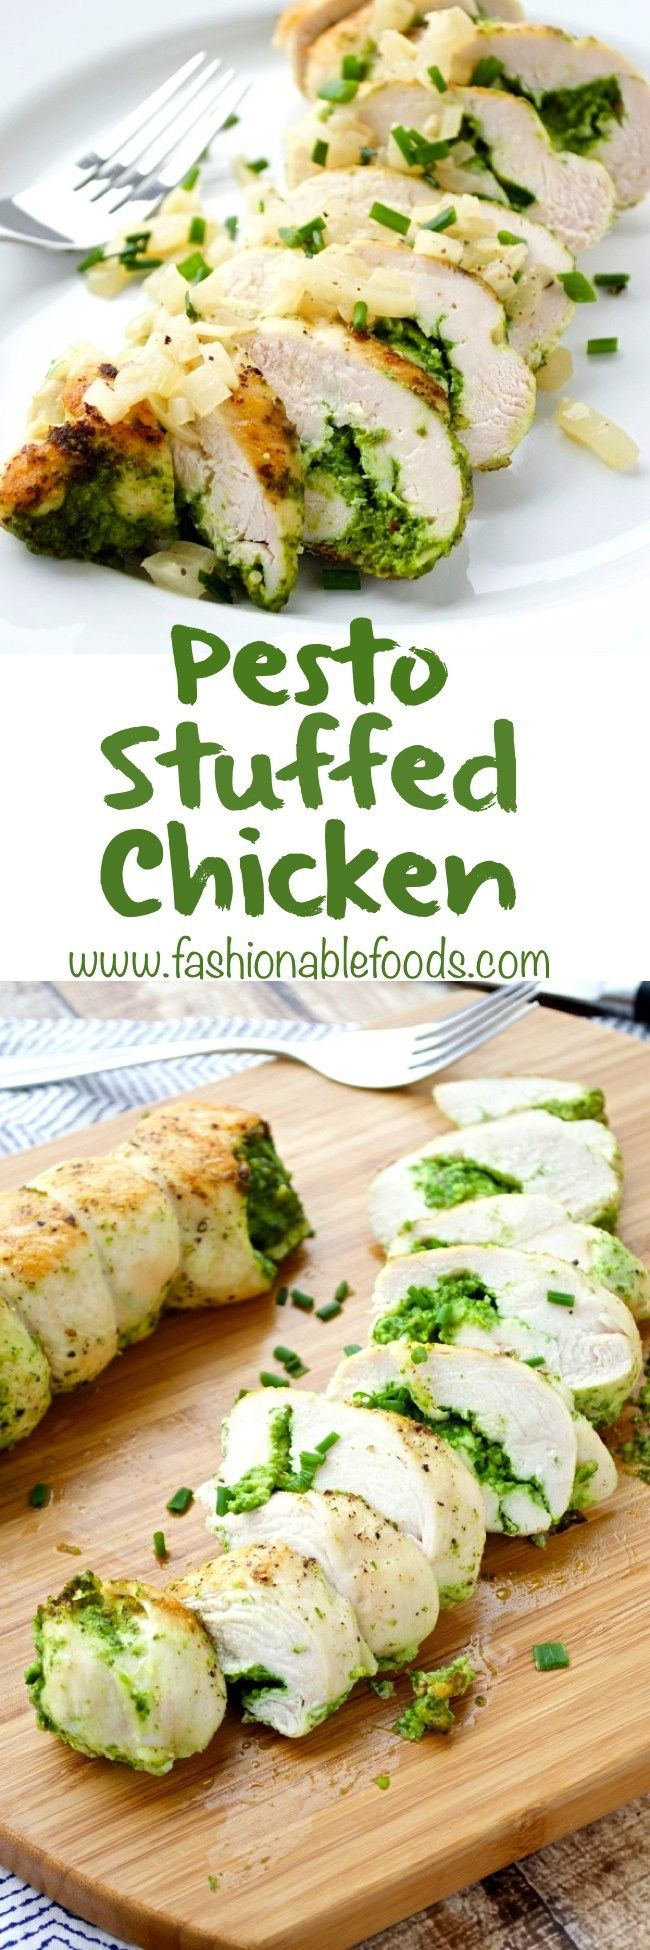 25+ best ideas about Pesto stuffed chicken on Pinterest ...